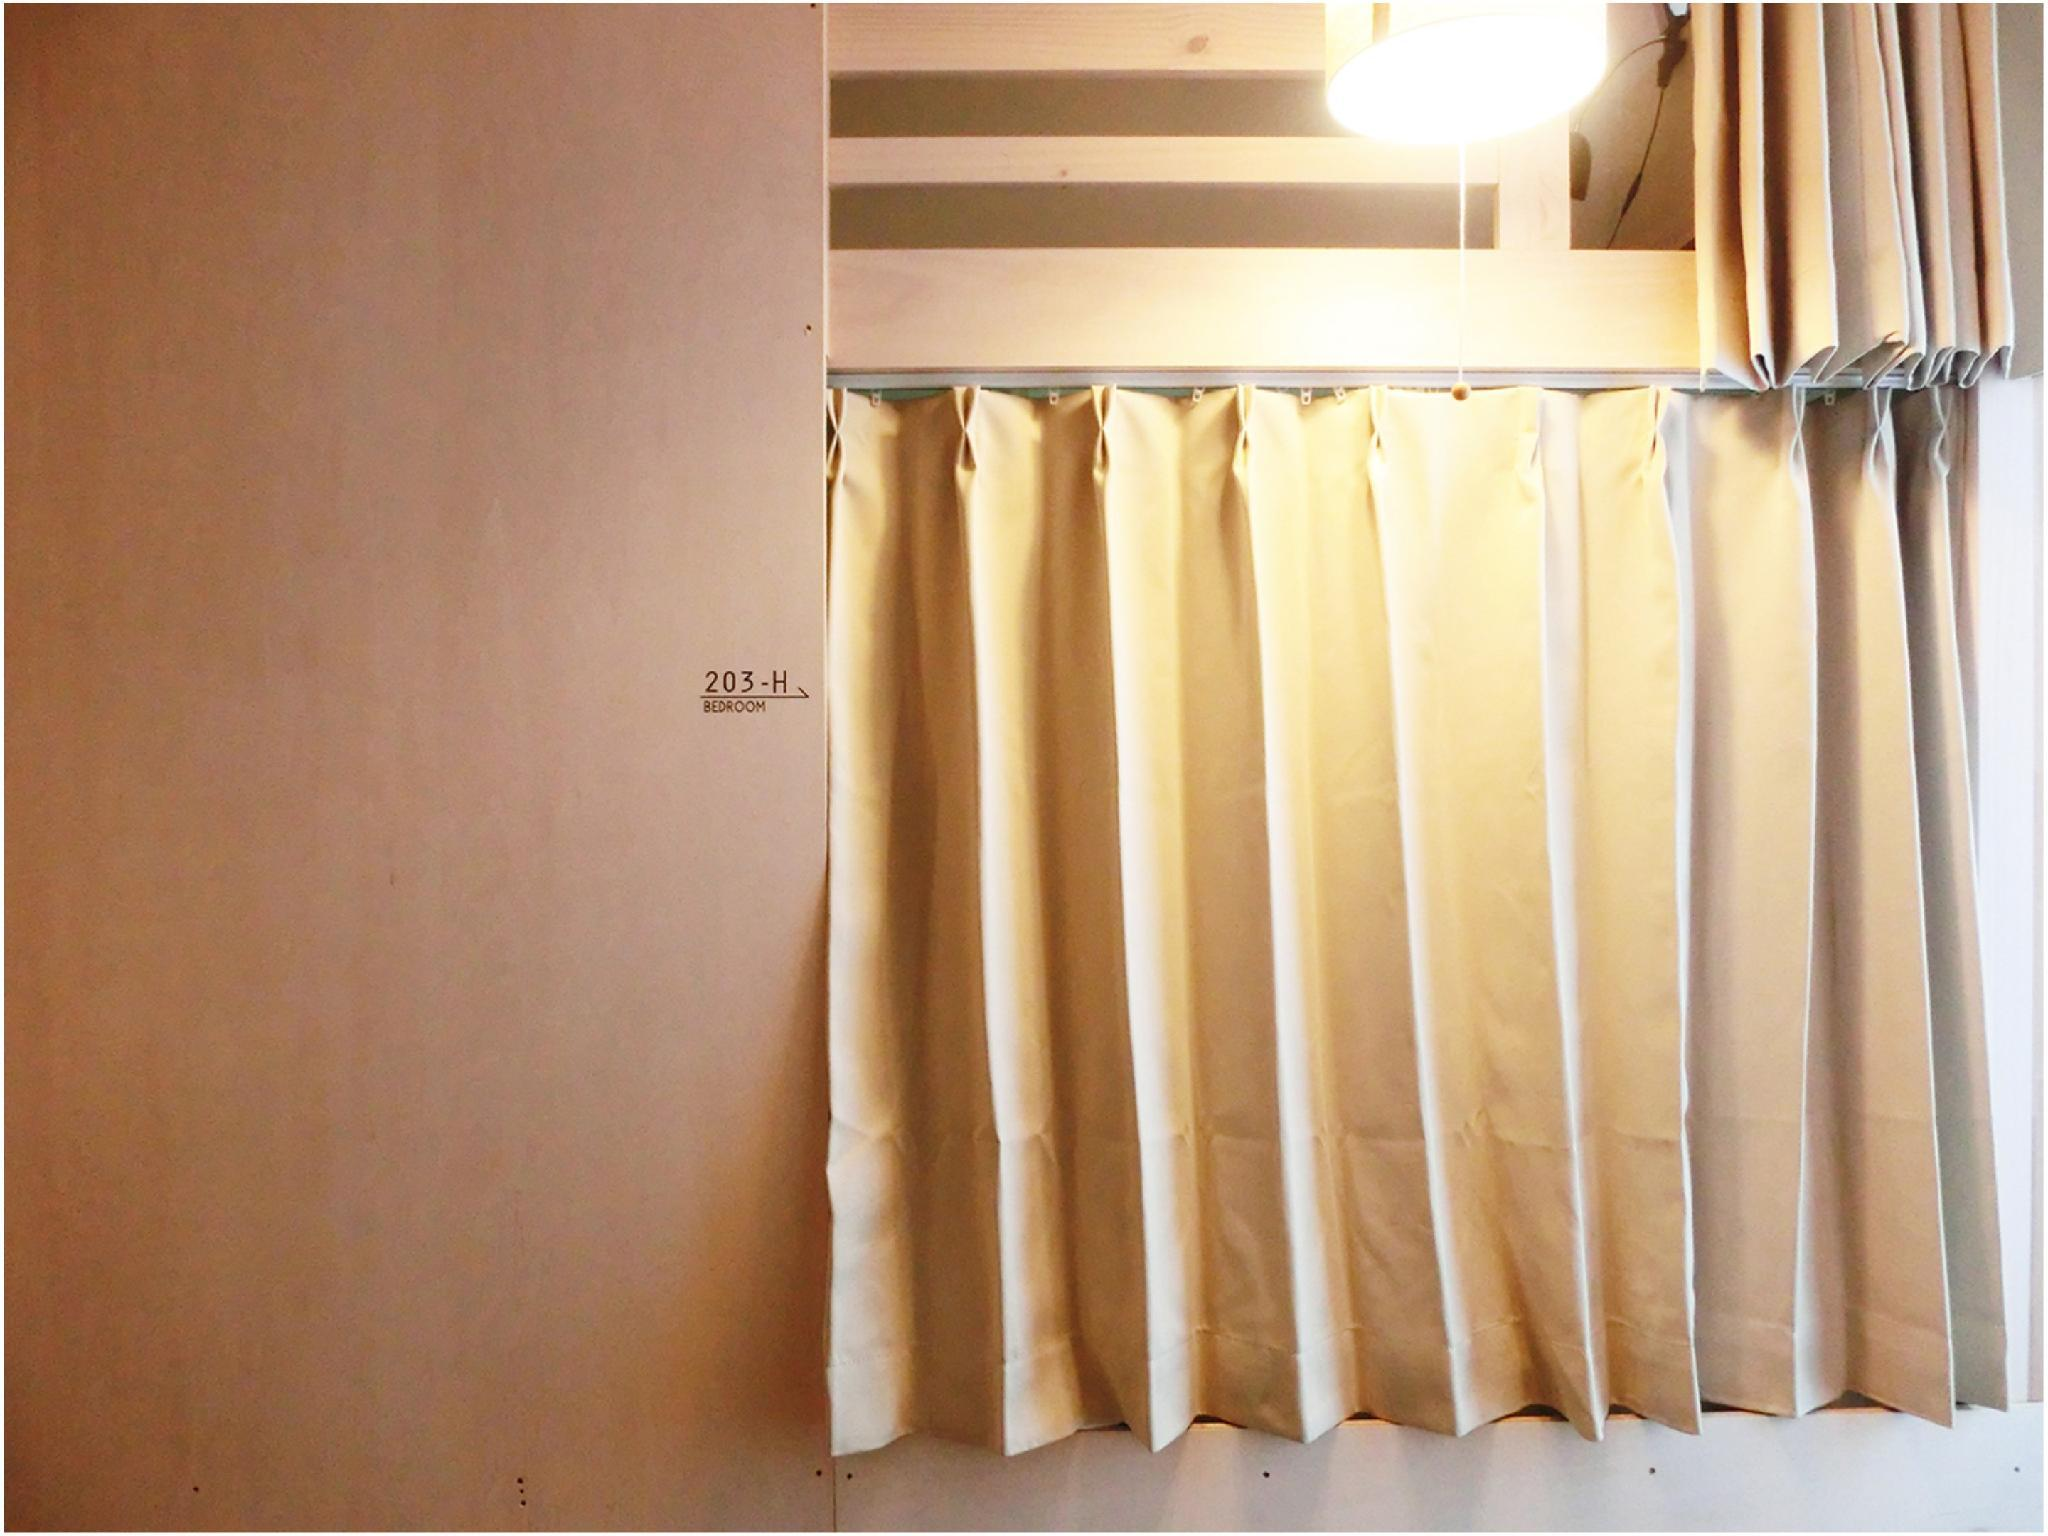 女士合住房(雙層床) (Ladies' Dormitory Room (Bunk Beds))